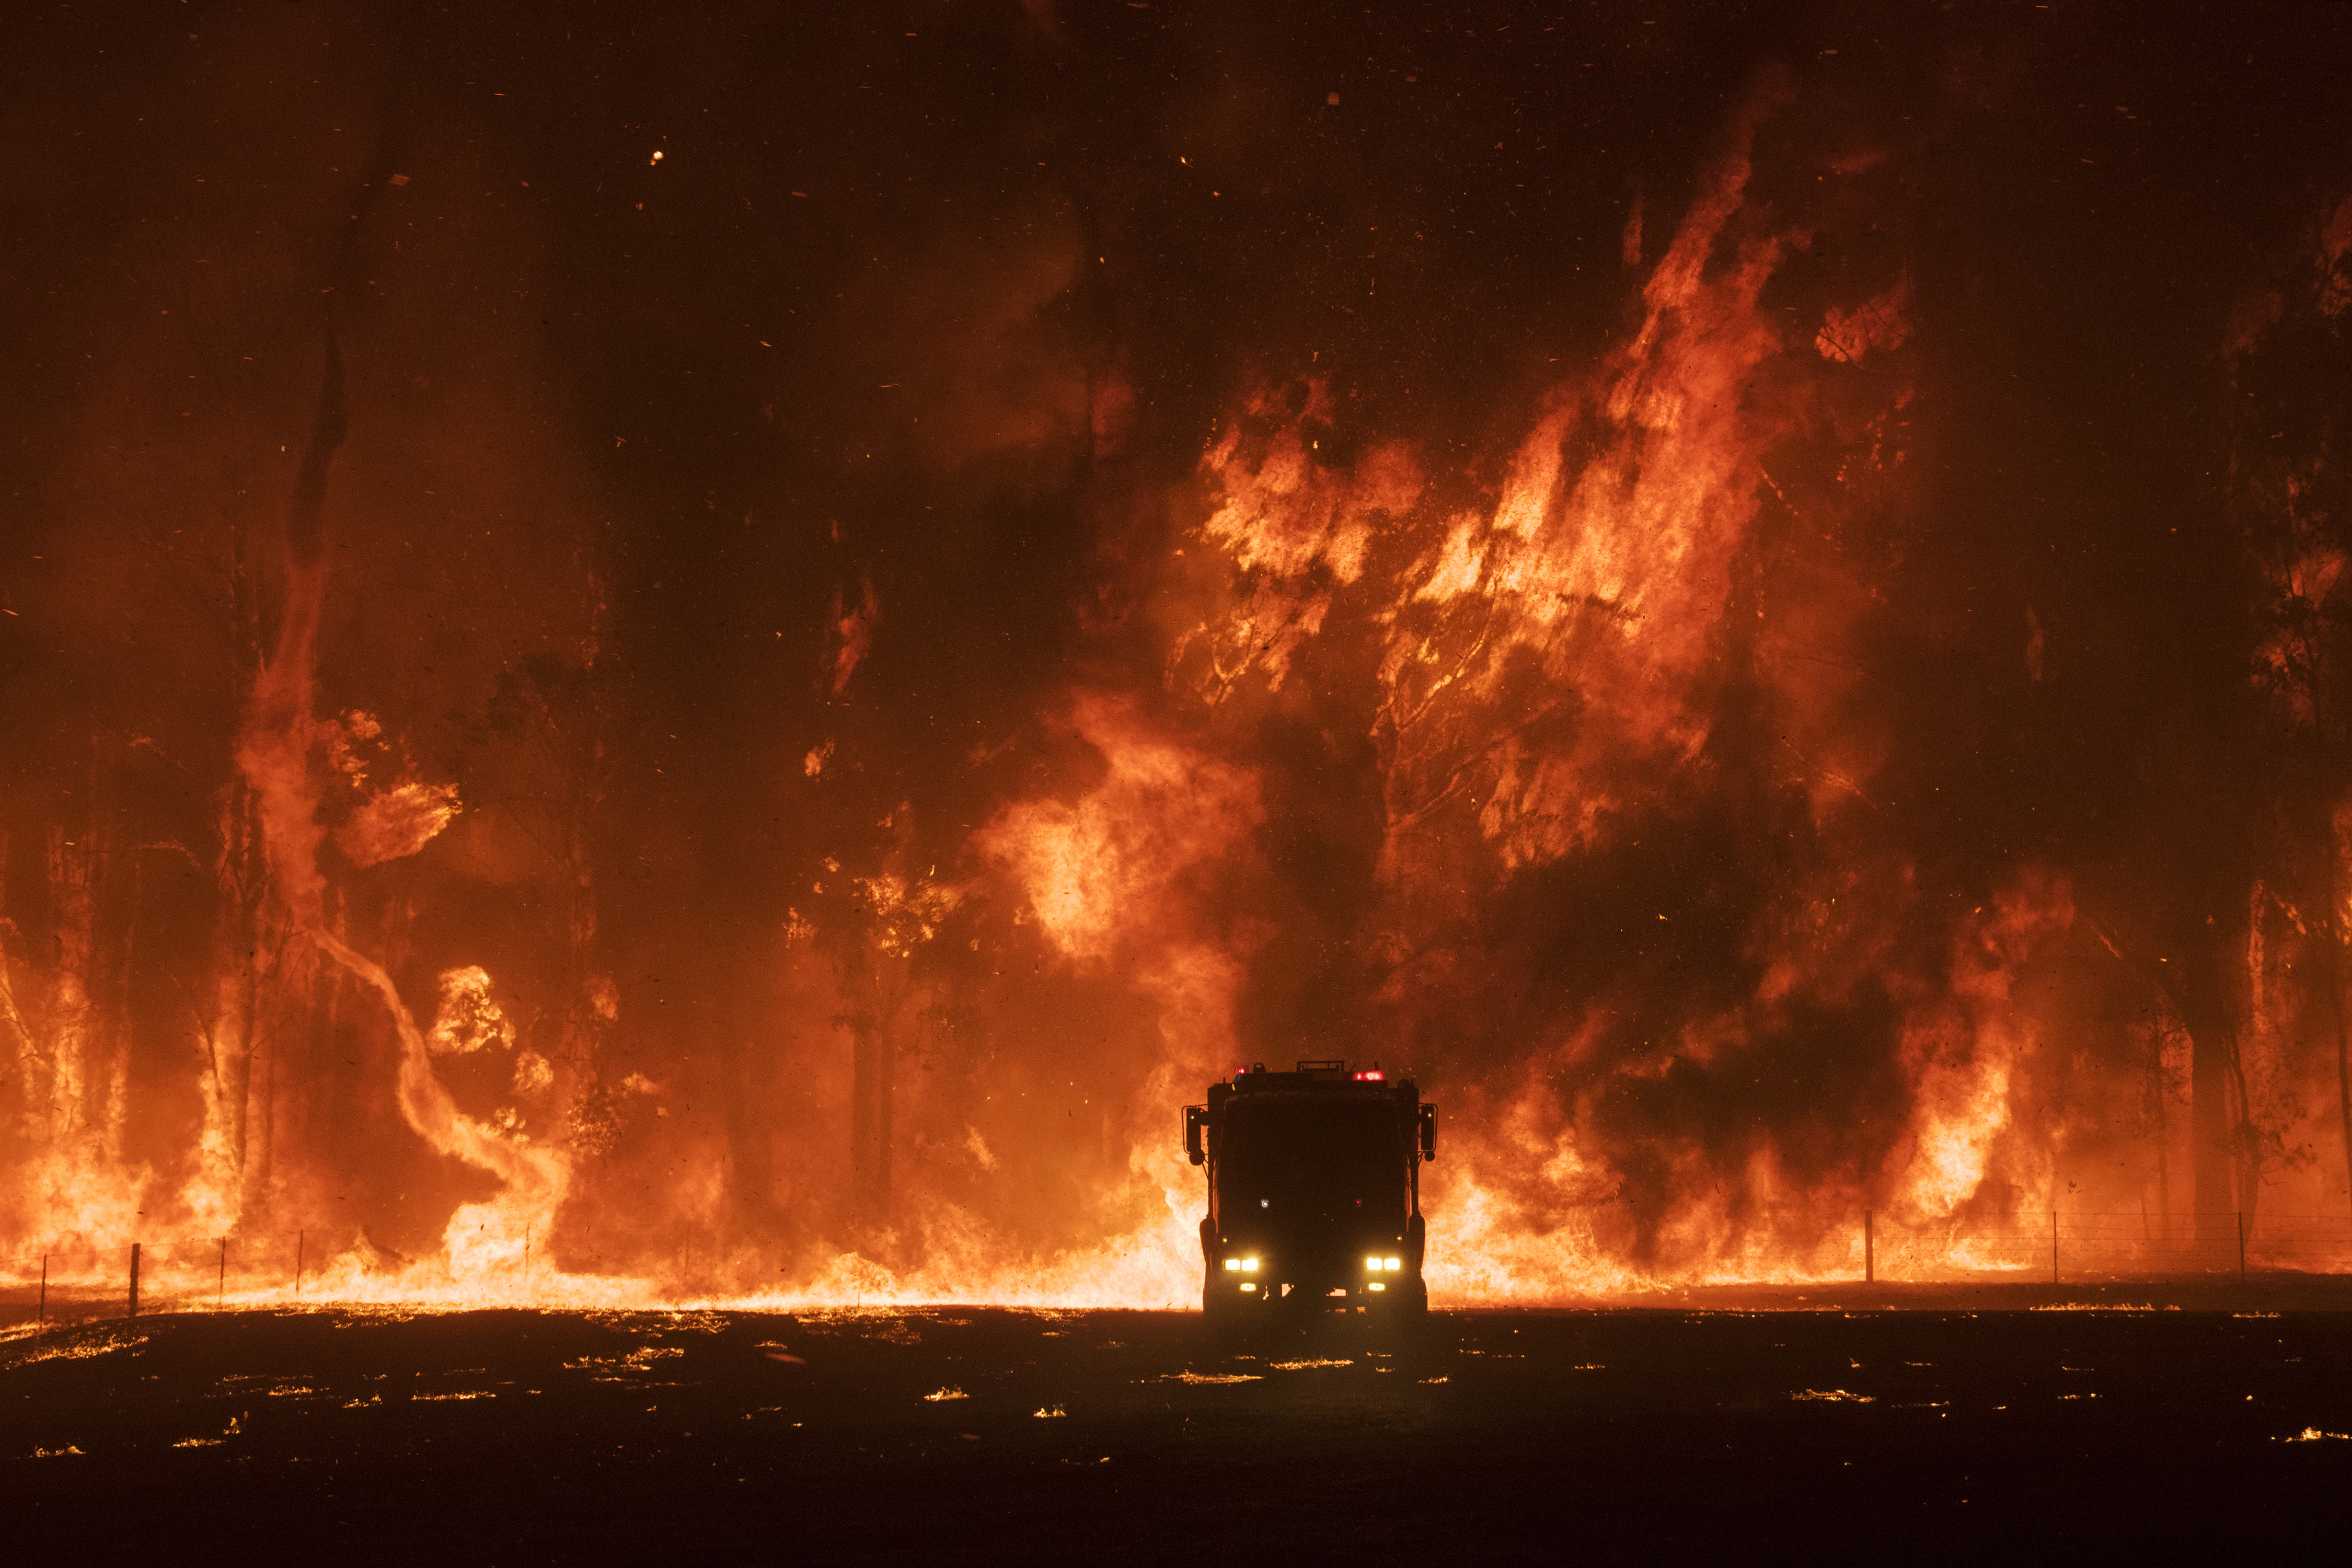 Shortlisted in the Documentary category. From a series titled The Burning, looking at Australia's recent bushfire crisis